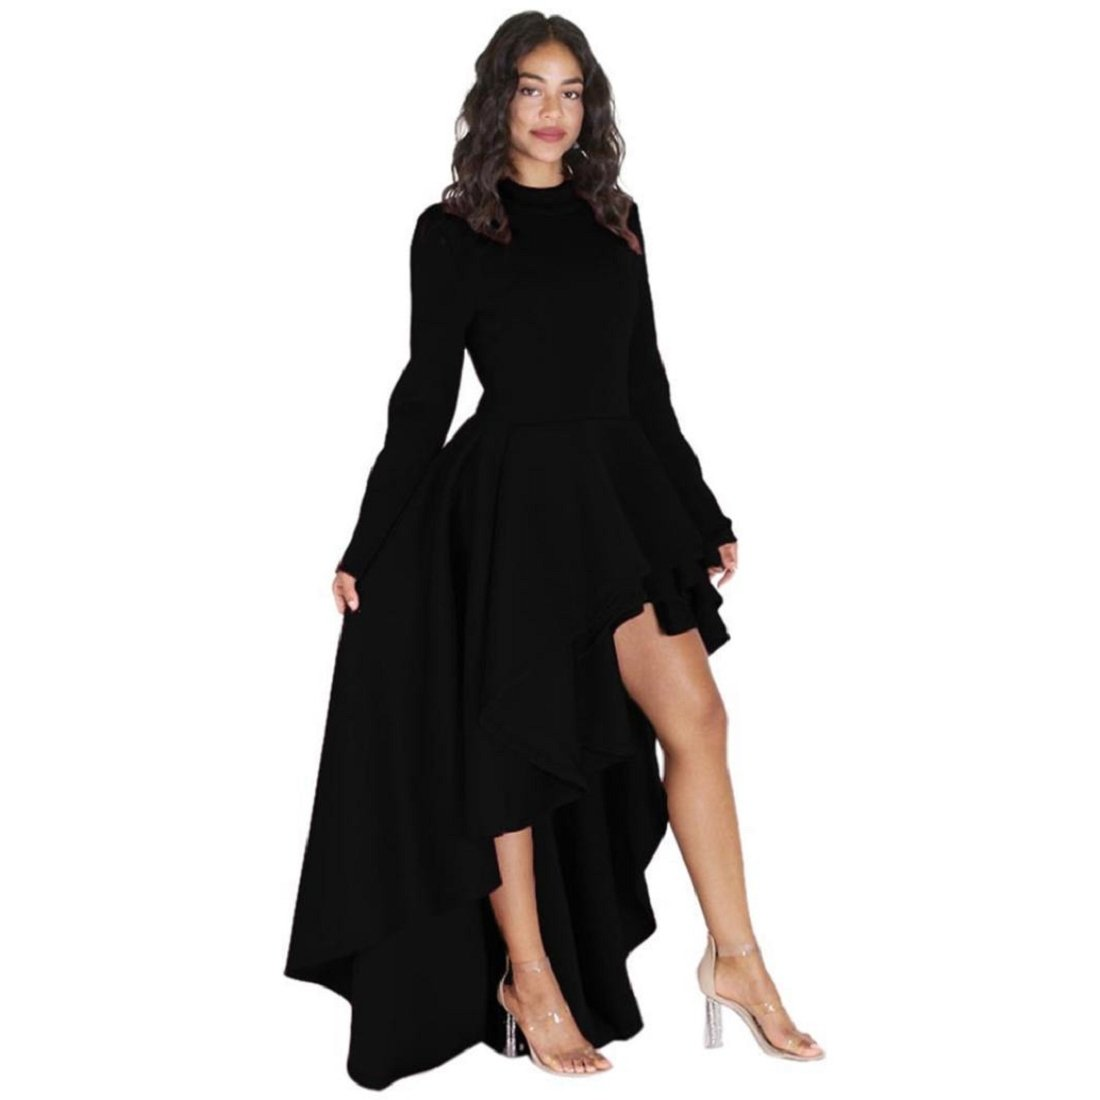 GONKOMA Women\'s Plus Size Long Sleeve High Low Peplum Dress Irregular Party  Party Gown Prom Club Dress